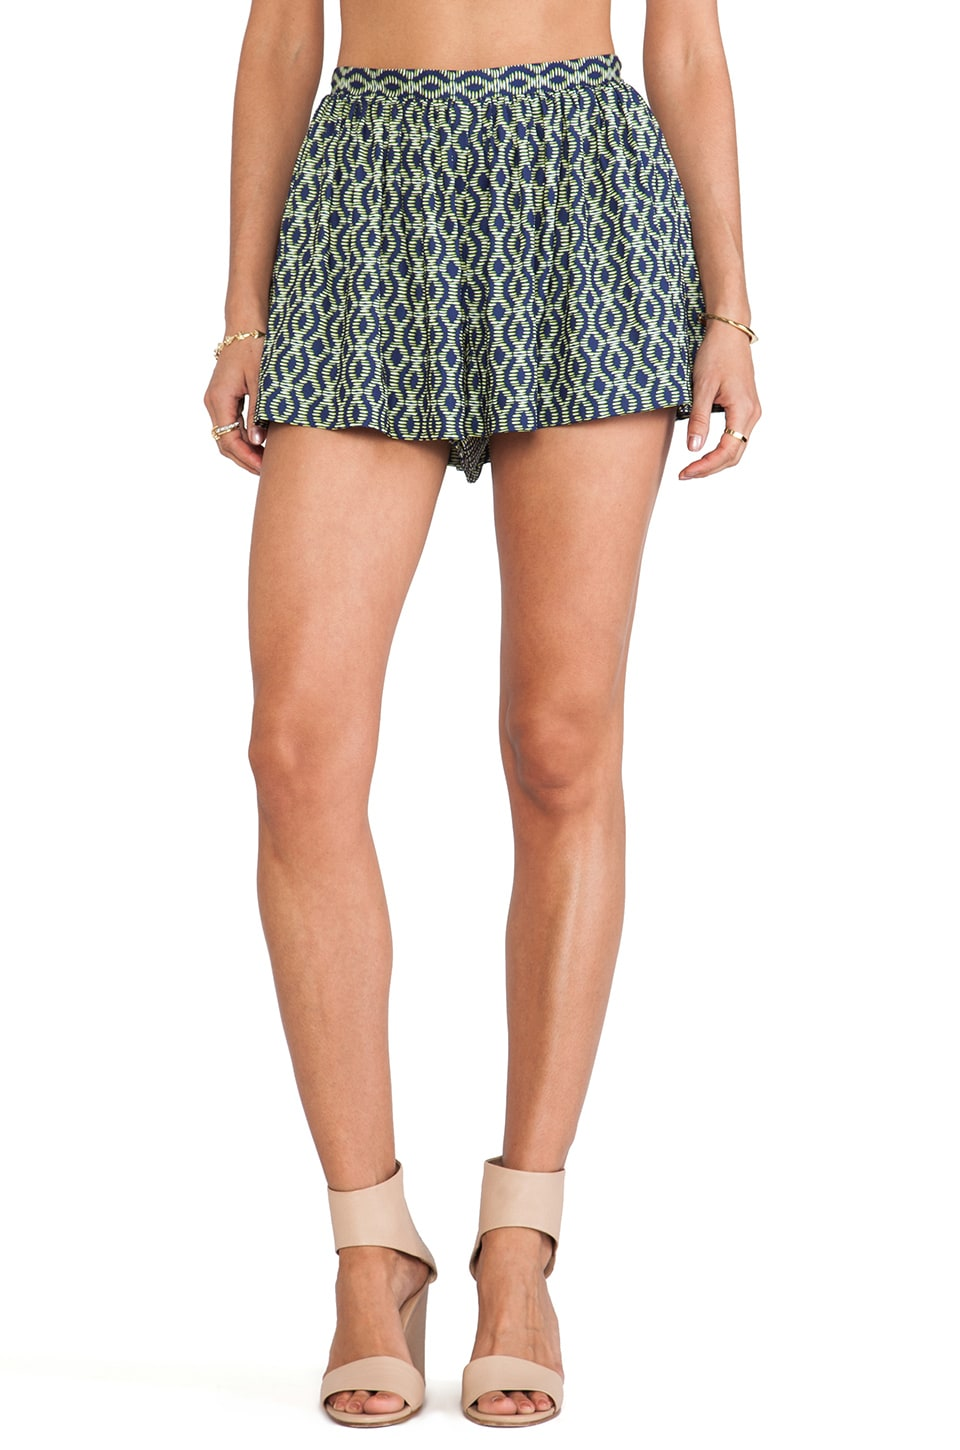 Thakoon Addition Helix Printed Full Shorts in Green & Blue